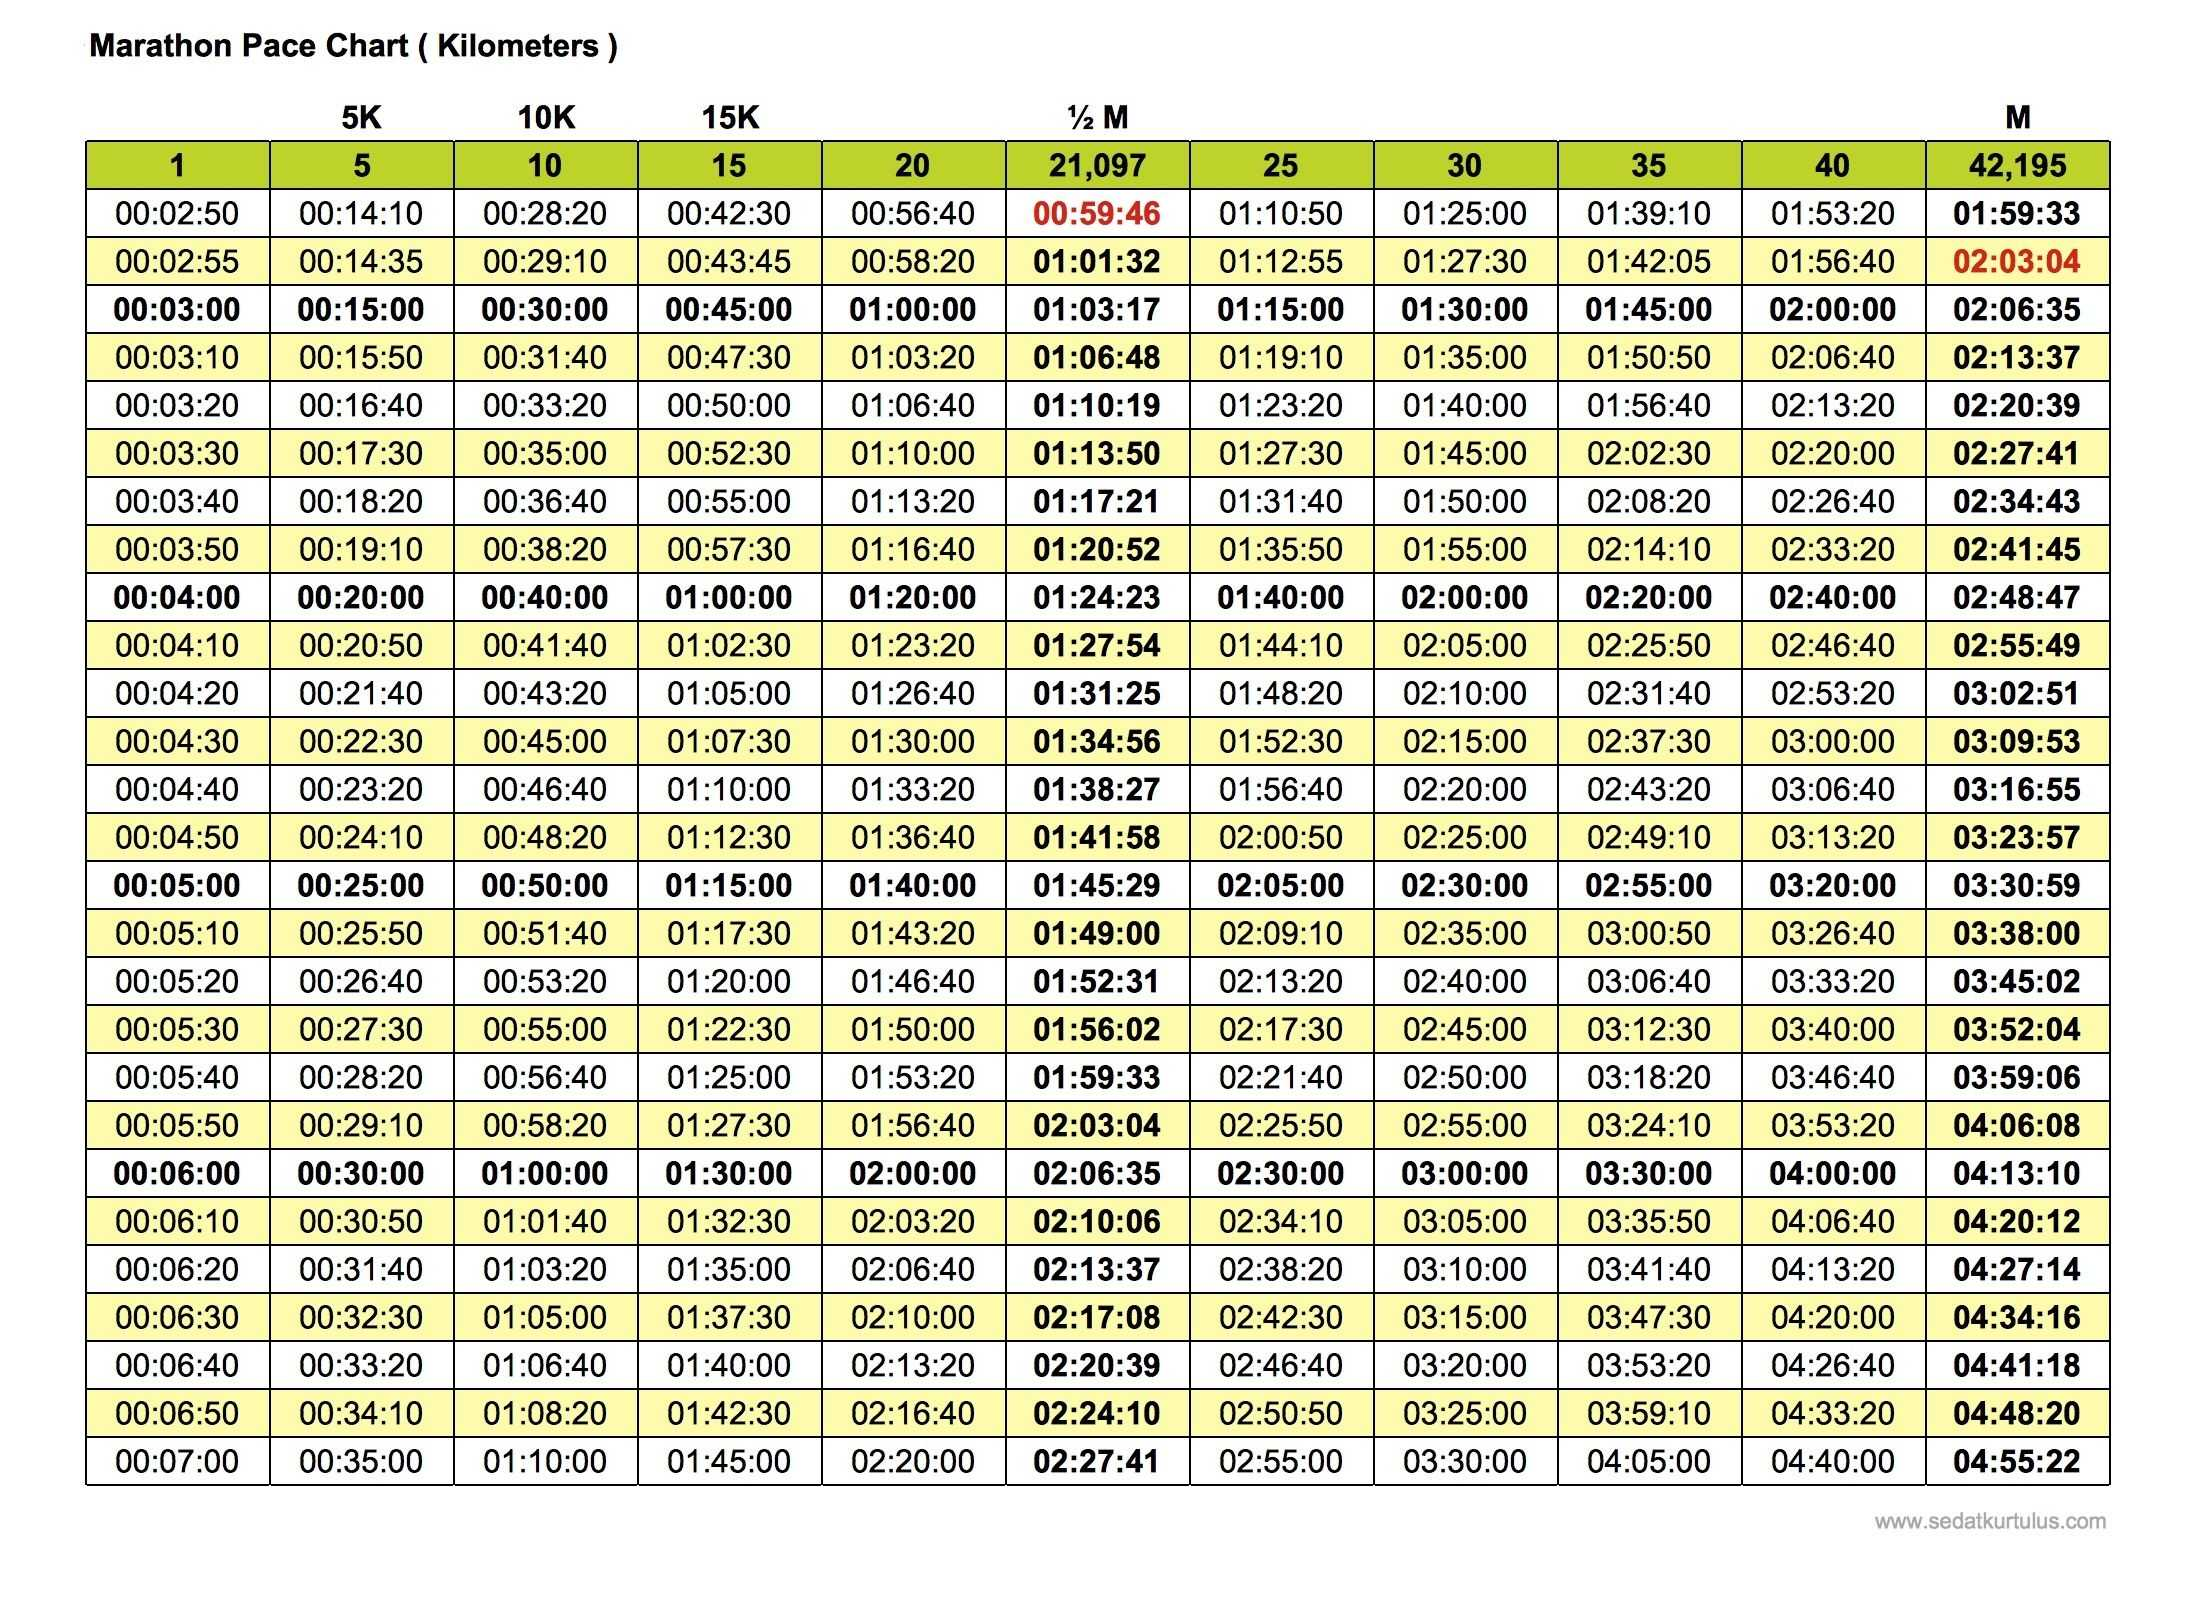 Marathon Pace Chart Kilometers Version Free For Print